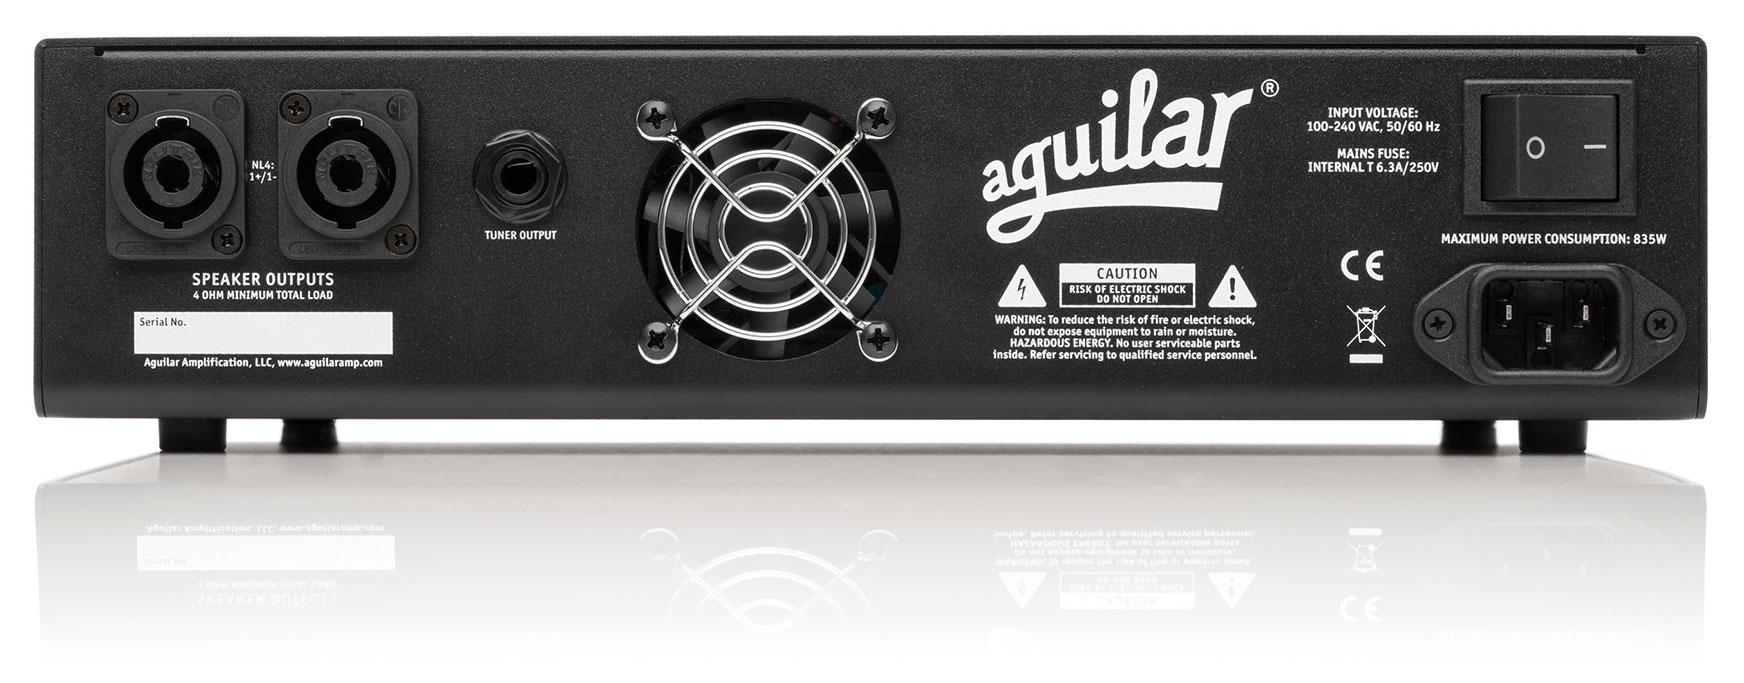 Ag 700 Aguilar Amplification 100 Amp Fuse Box Diagram Youtube The Also Features A Series Effects Loop Xlr Balanced Output And Two Rear Panel Speakon Outputs